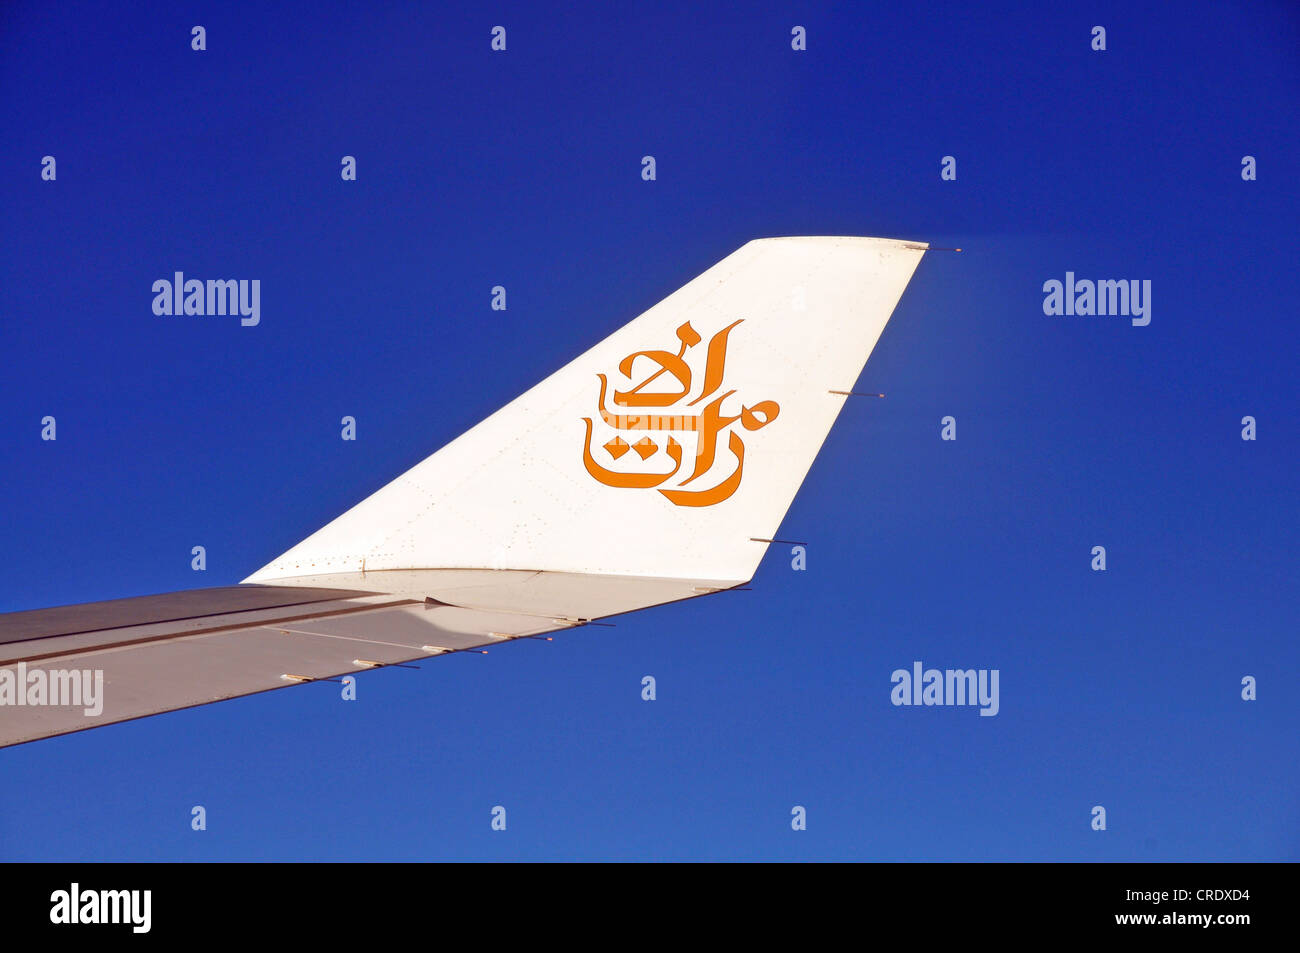 Right wing with winglet, Airbus 330-200, Emirates airline - Stock Image